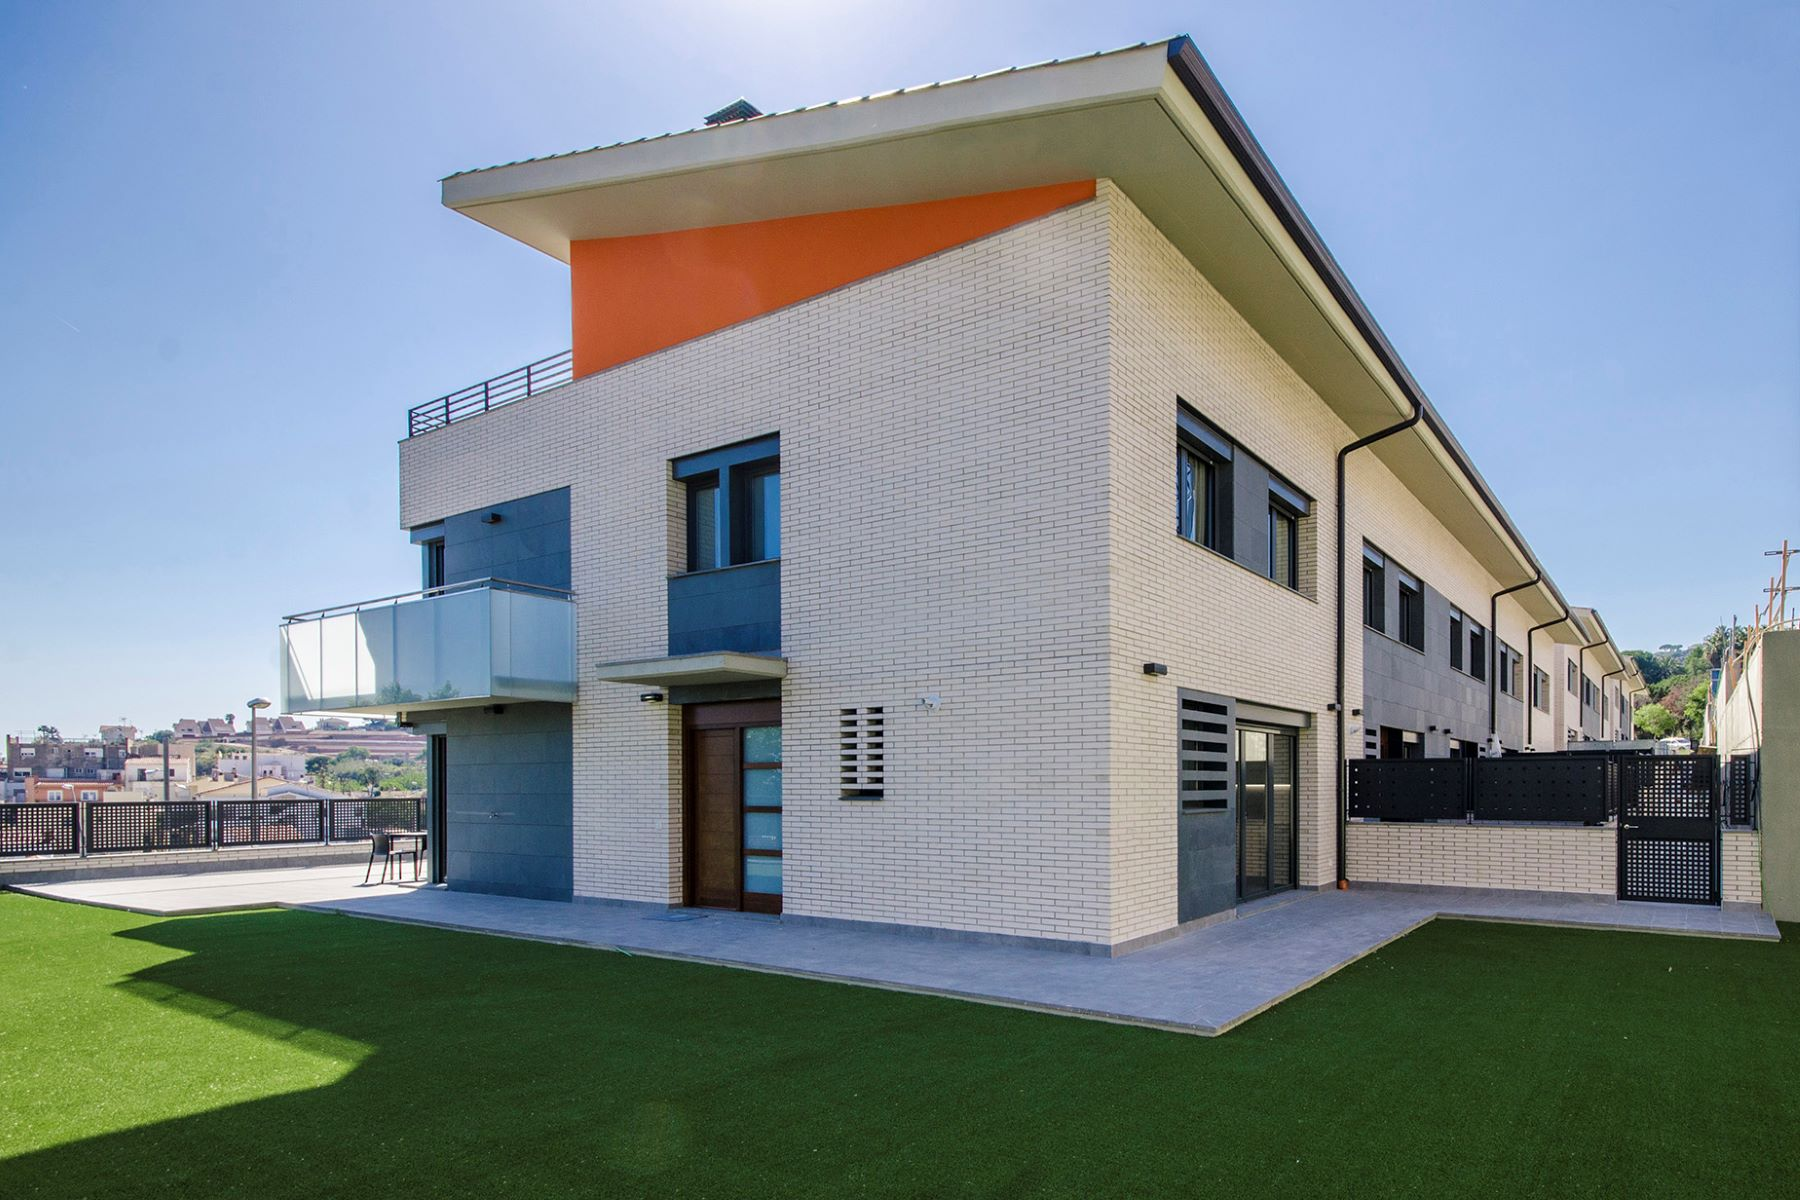 Single Family Home for Sale at New promotional offer in Teià with sea view Teia, Barcelona, 08329 Spain